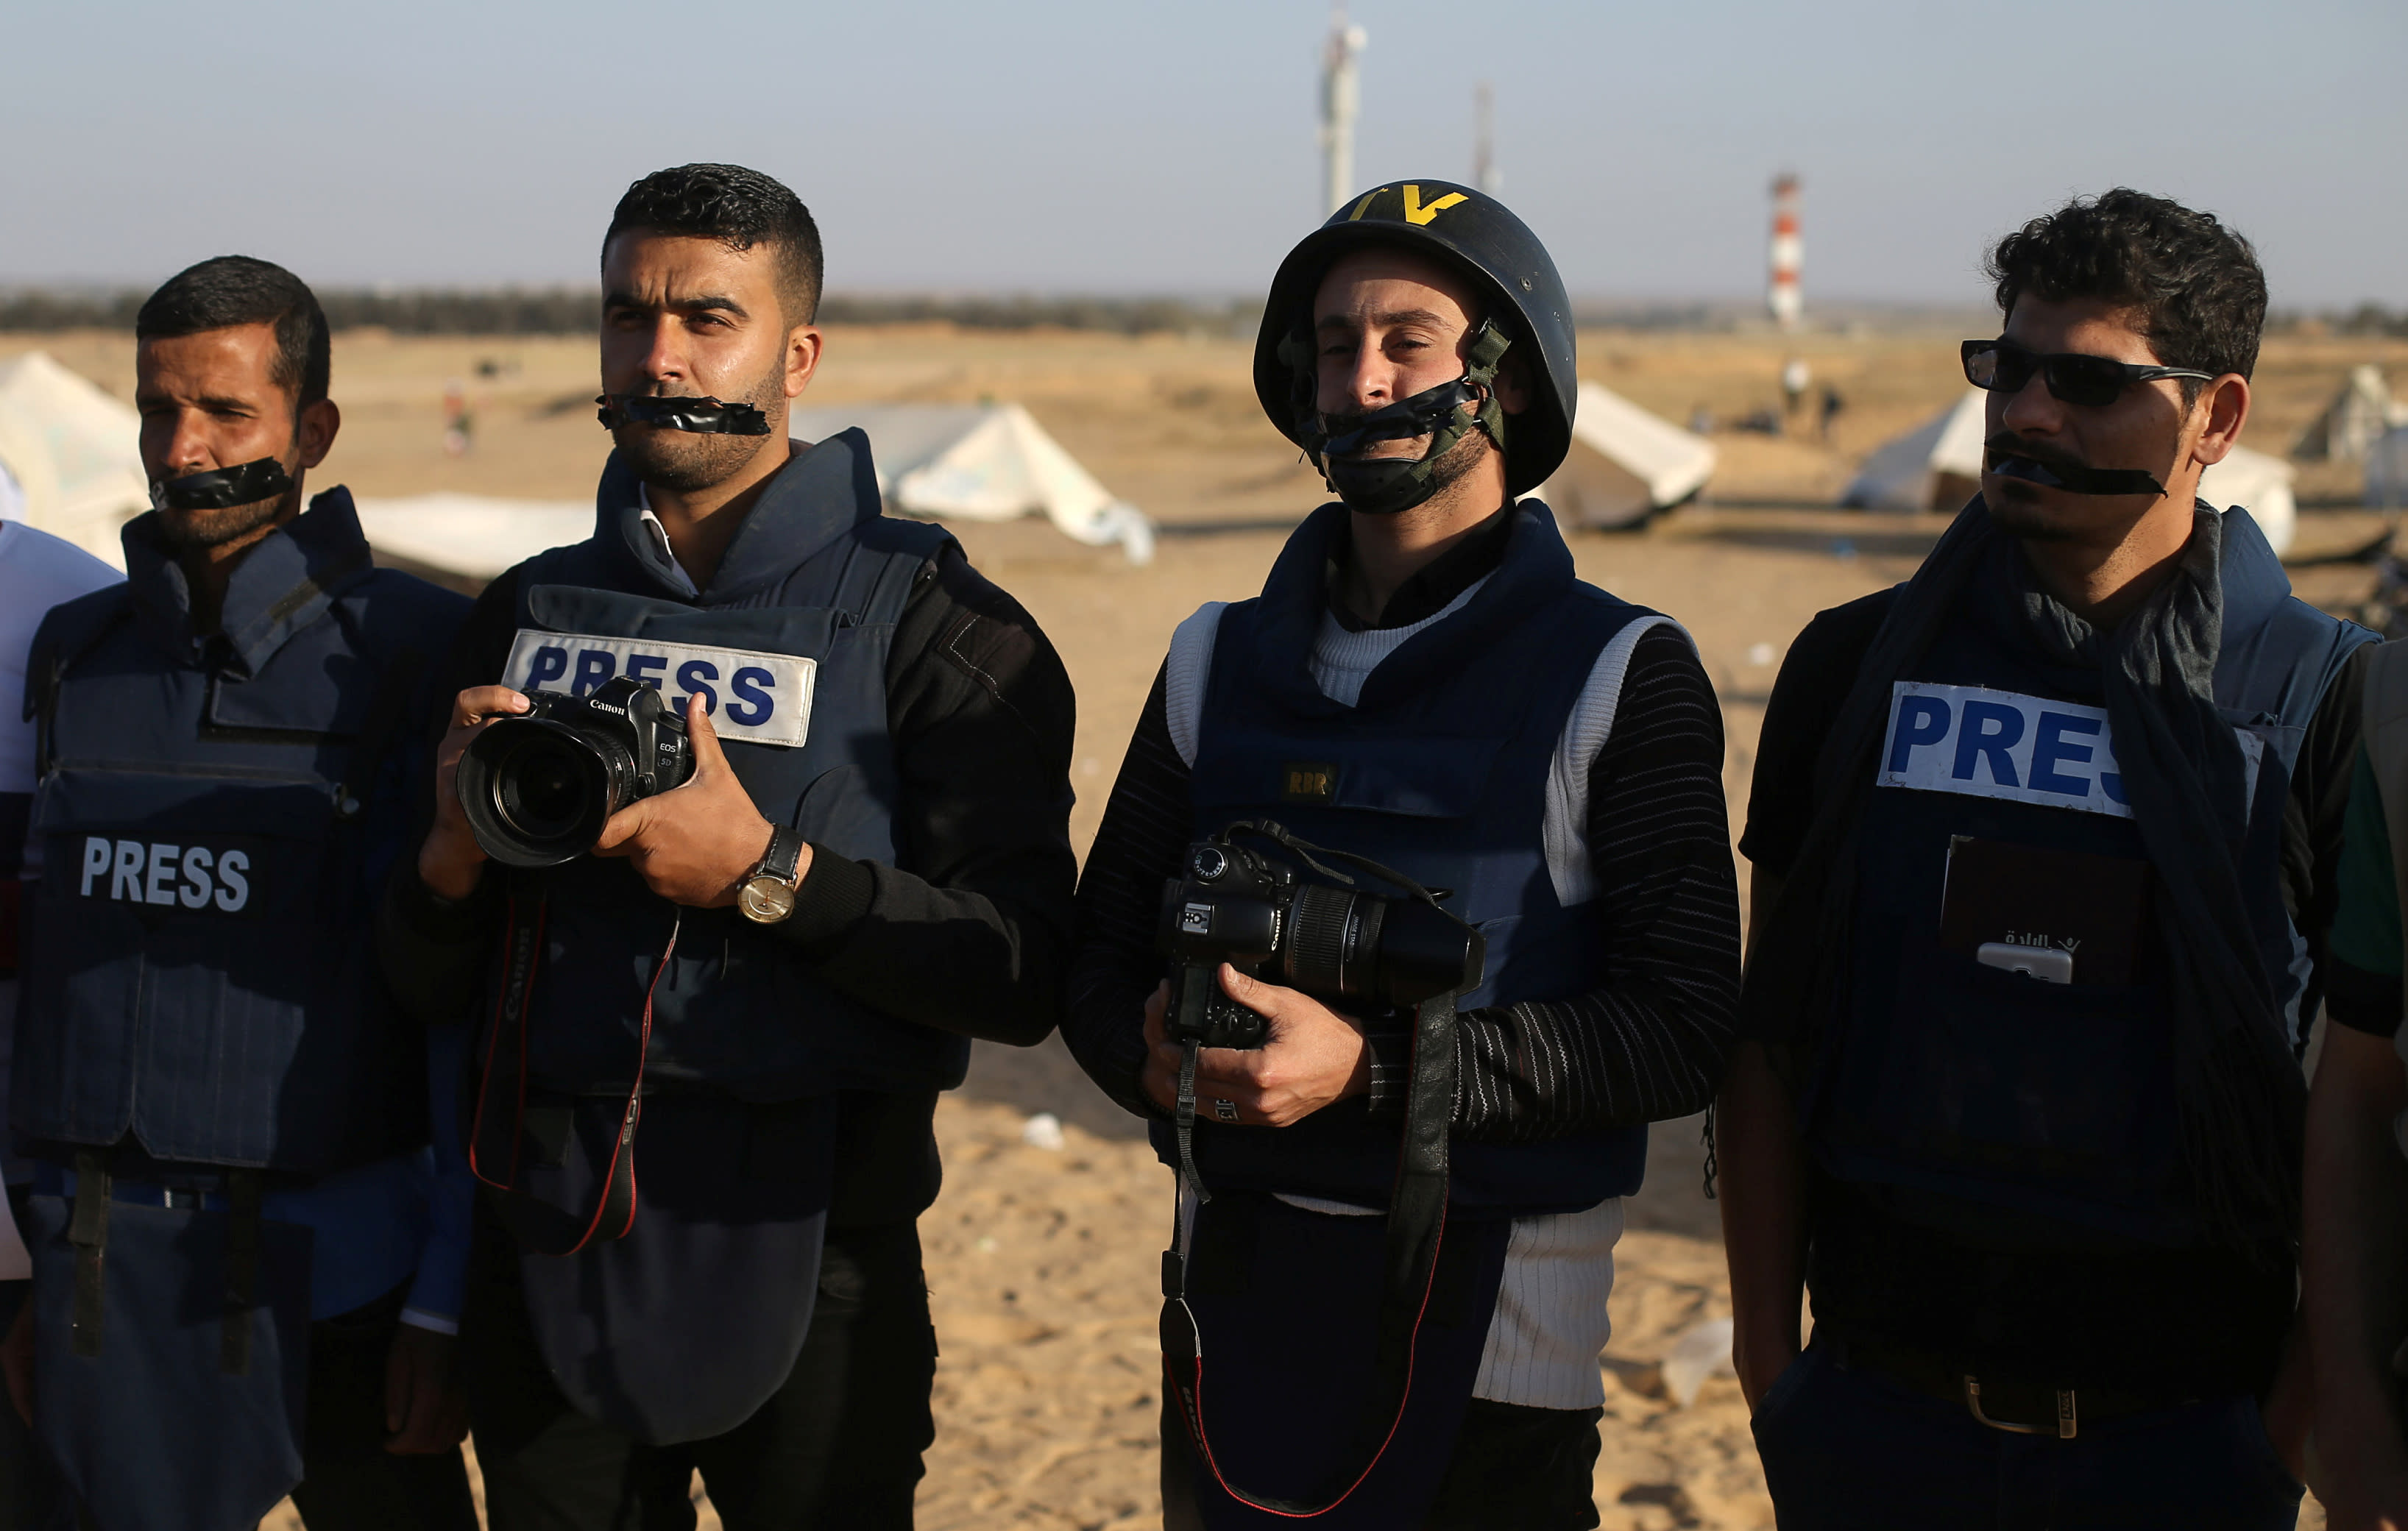 Journalists take part in a protest against the killing of Palestinian journalist Yasser Murtaja, at the Israel-Gaza border, in the southern Gaza Strip April 8, 2018. (REUTERS/IBRAHEEM ABU MUSTAFA)